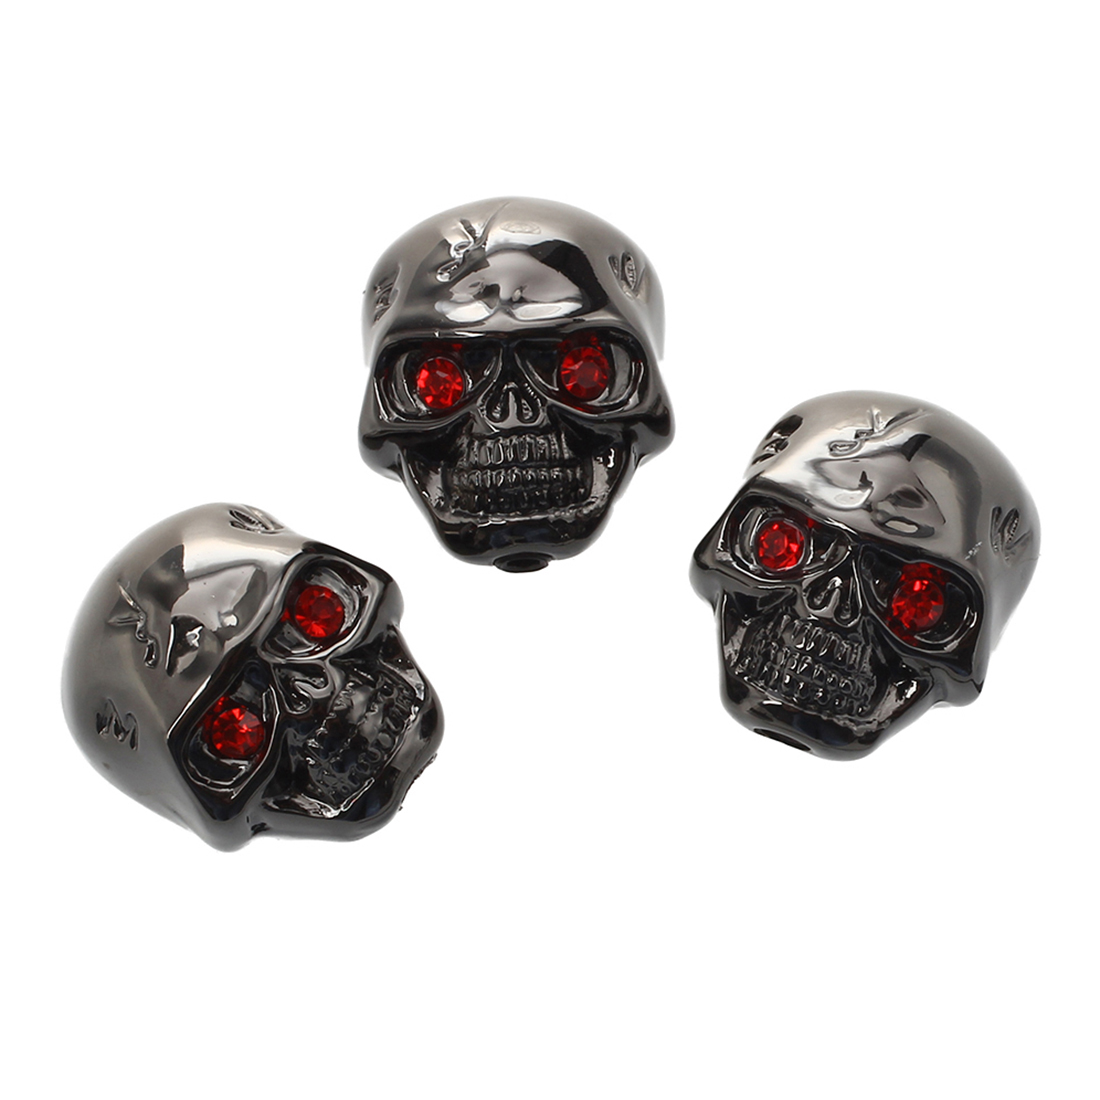 HOT 8X 3pcs Electric Guitar Skull Head Volume Control Knobs---Black audio volume control gray plastic potentiometer knobs 3 8 x 4